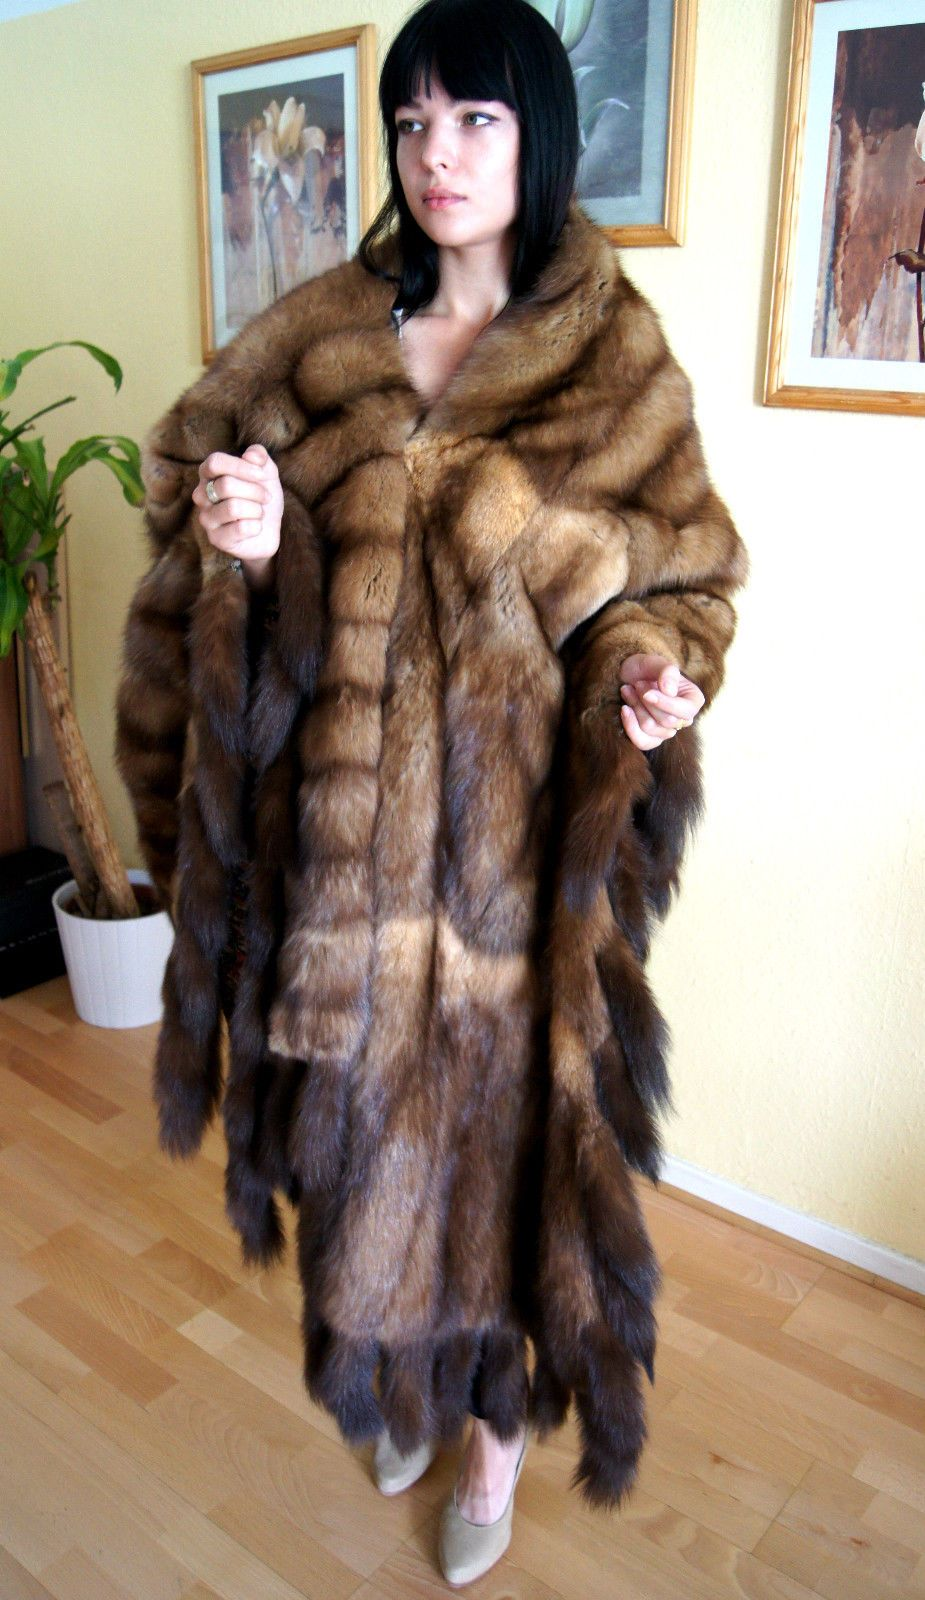 Pelzmantel Zobelmantel Zobelumhang Zobel sable fur coat zibellino ... for Sable Fur Cape  67qdu